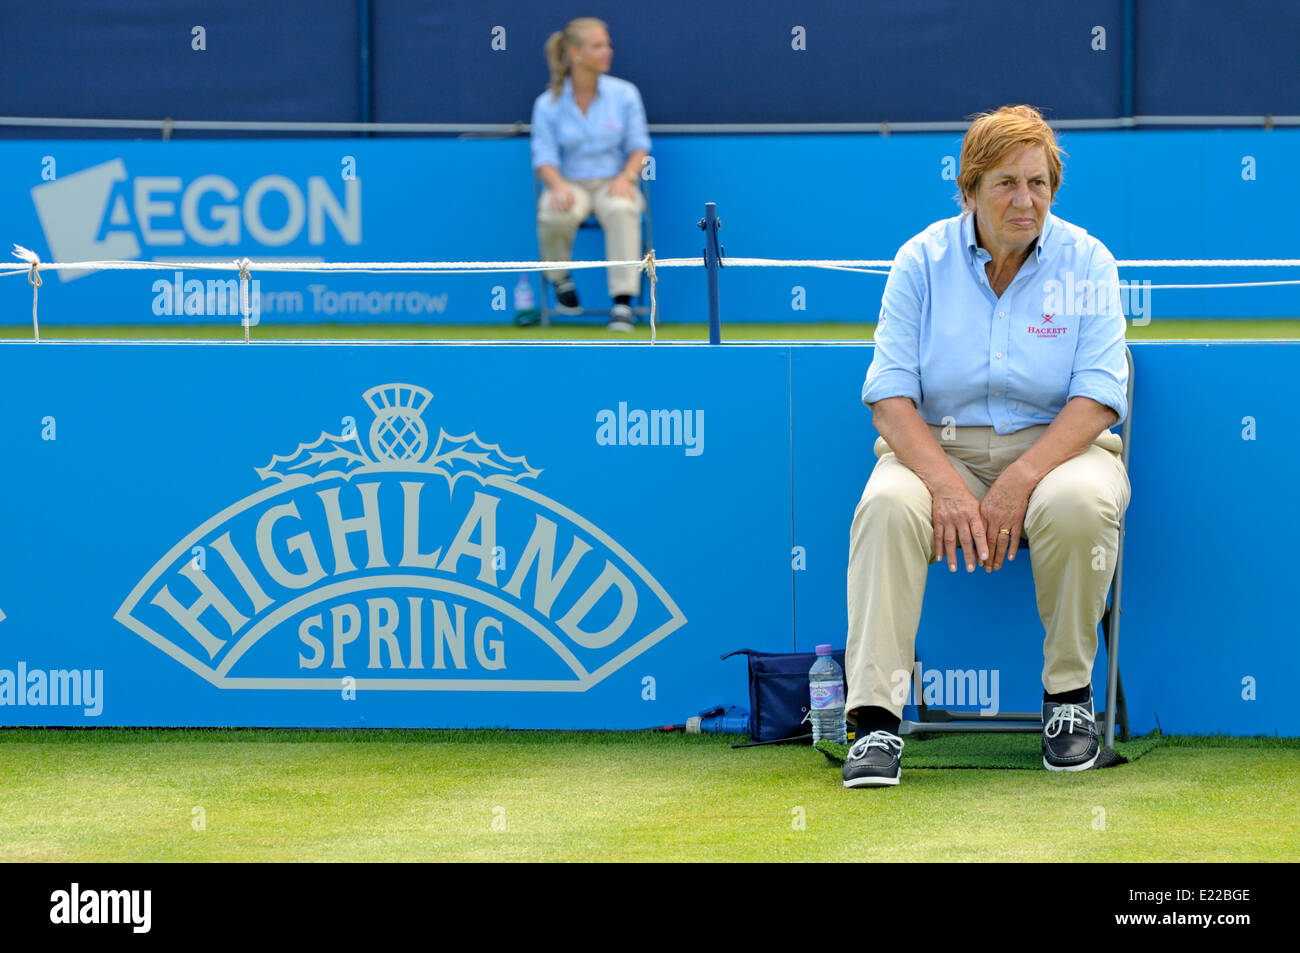 Female Line judges at the Aegon Tennis Championships, Queens Club, London, June10th 2014. - Stock Image